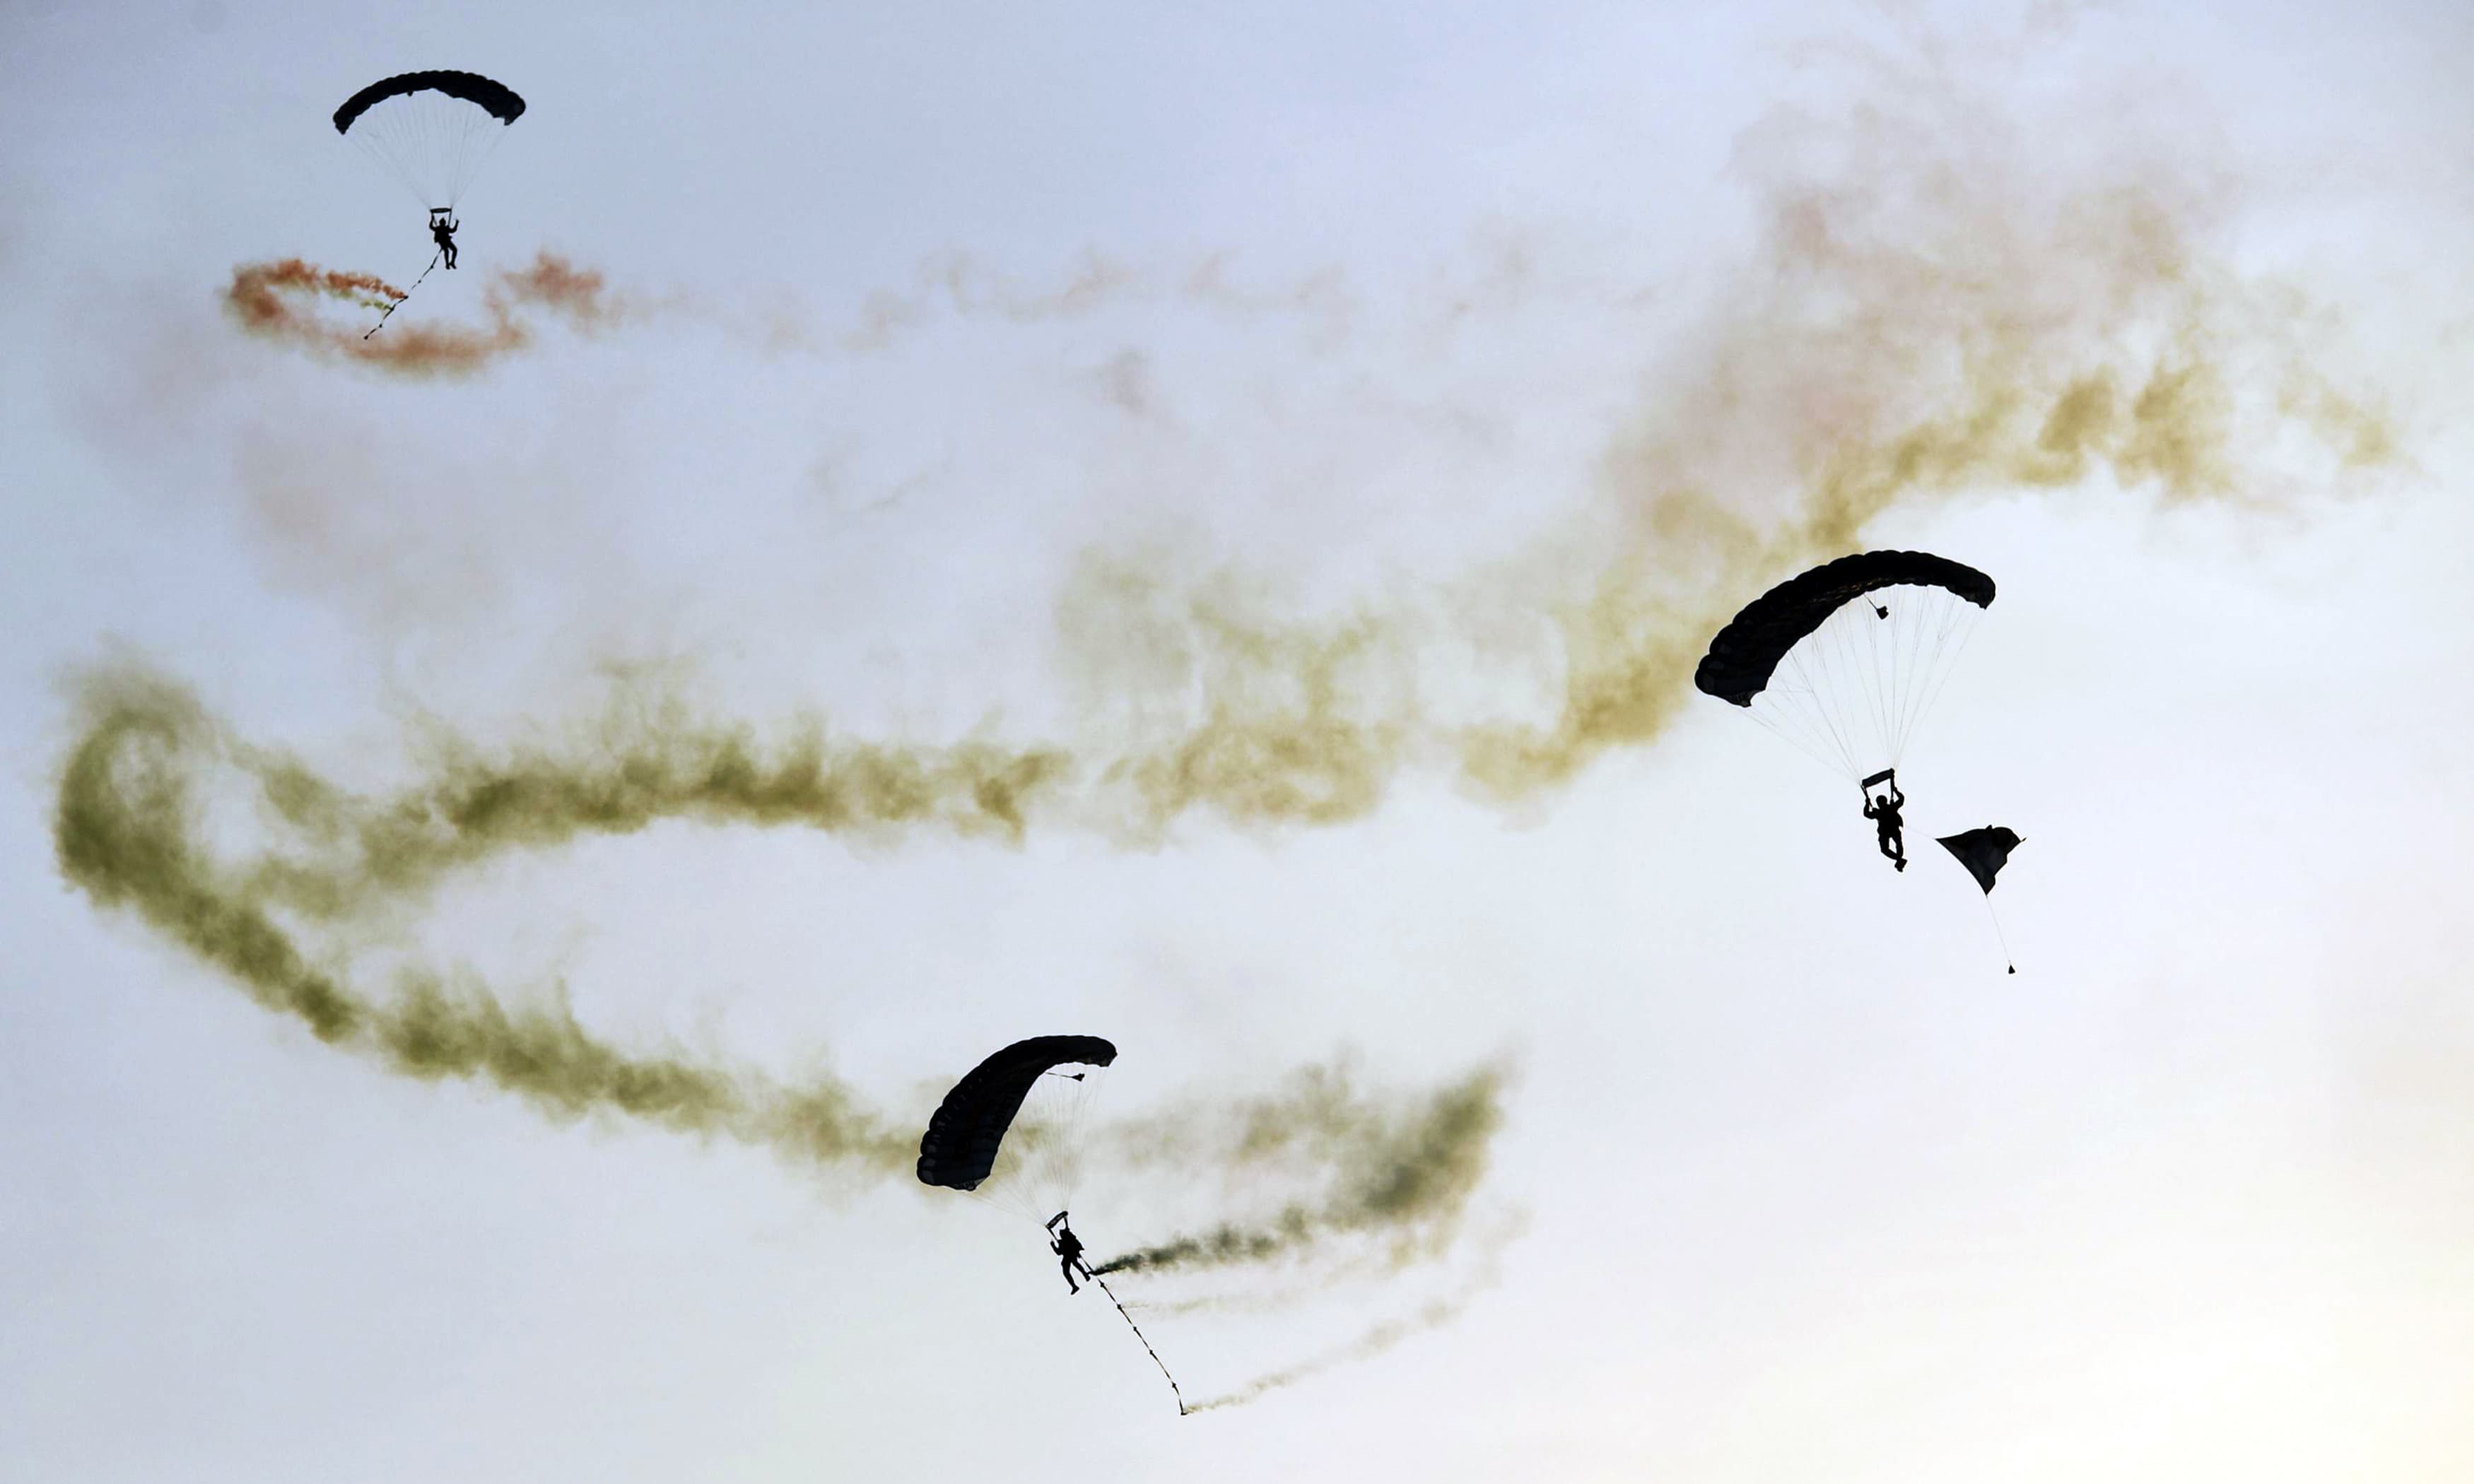 Paratroopers descend on parachutes during the 10th IDEAS expo. —AFP